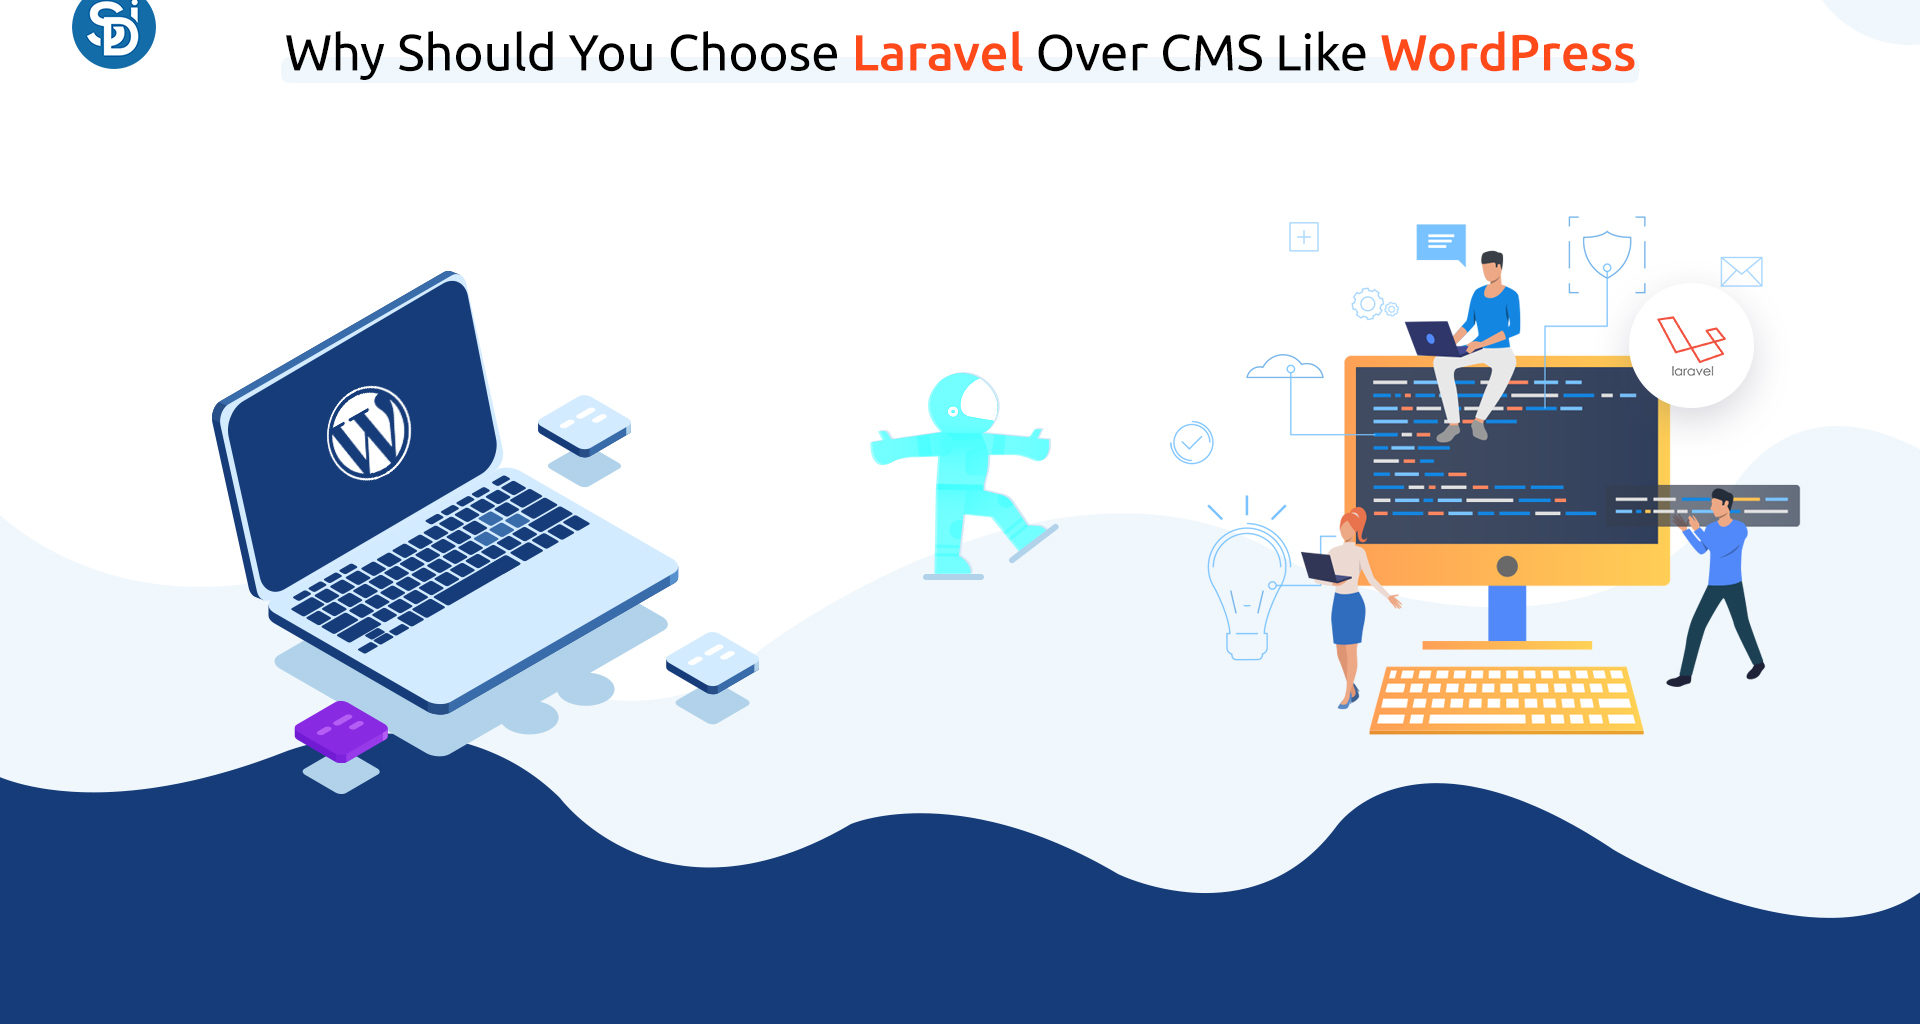 Why Should You Choose Laravel Over a CMS Like WordPress